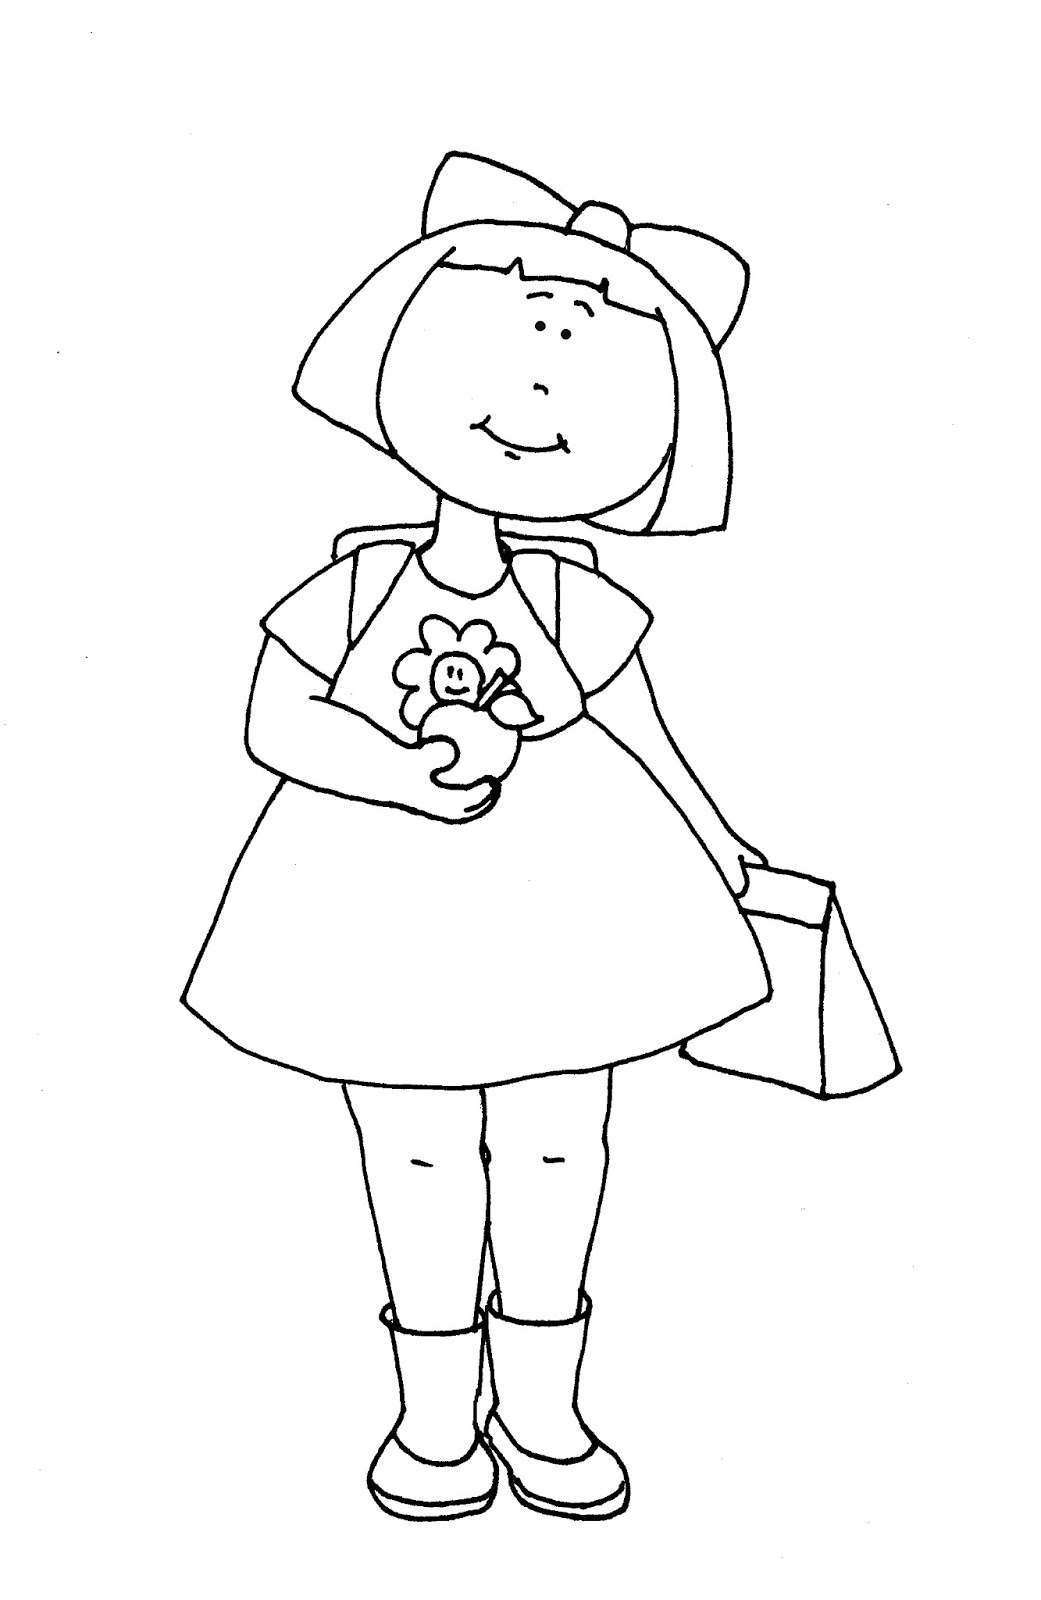 school girl coloring pages cool at the school girl hand up coloring page coloring coloring girl school pages